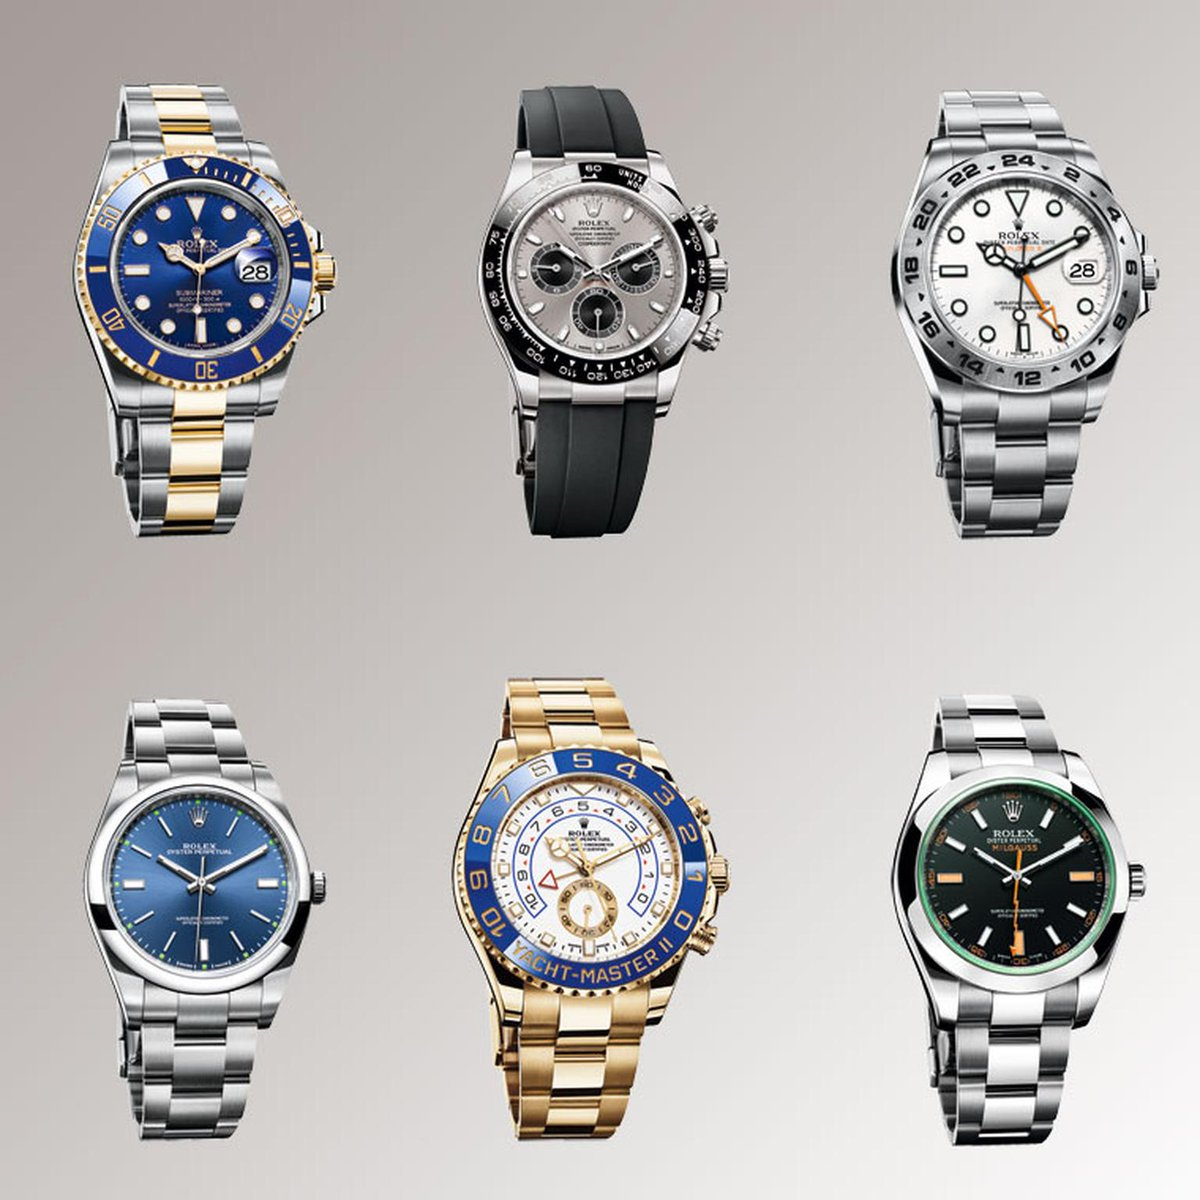 How to Purchase Rolex Watches Online